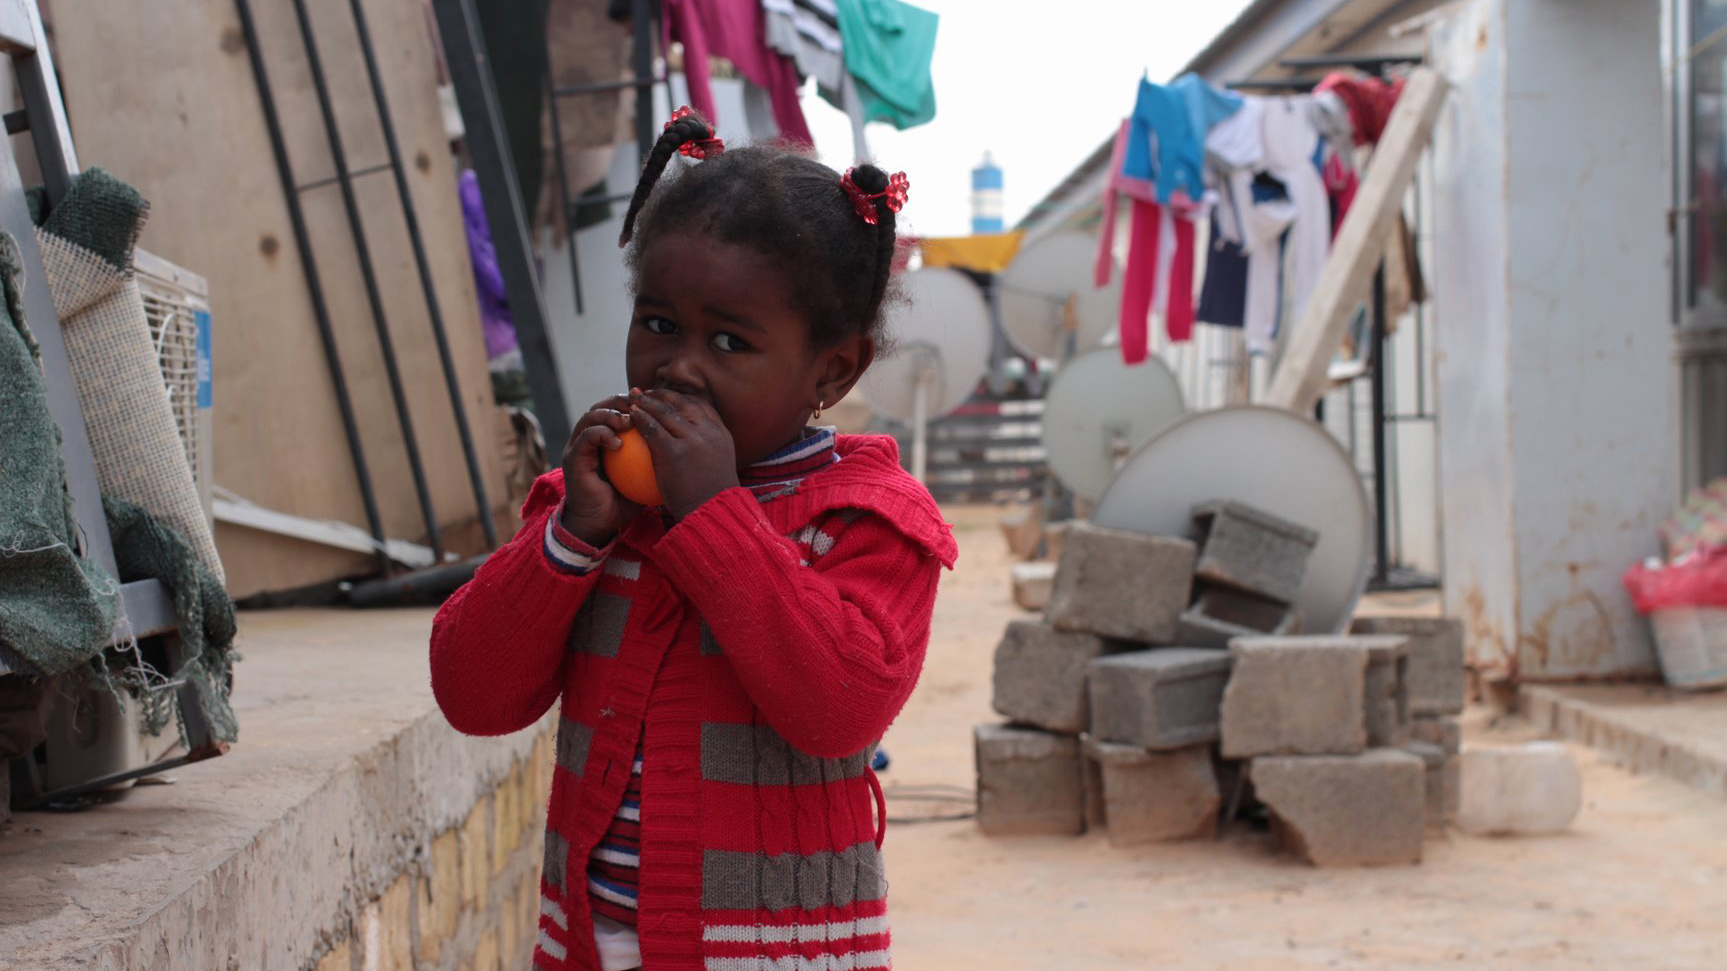 A Tawergha child at an IDP camp in Tripoli two years after the Libyan revolution, Feb 2013